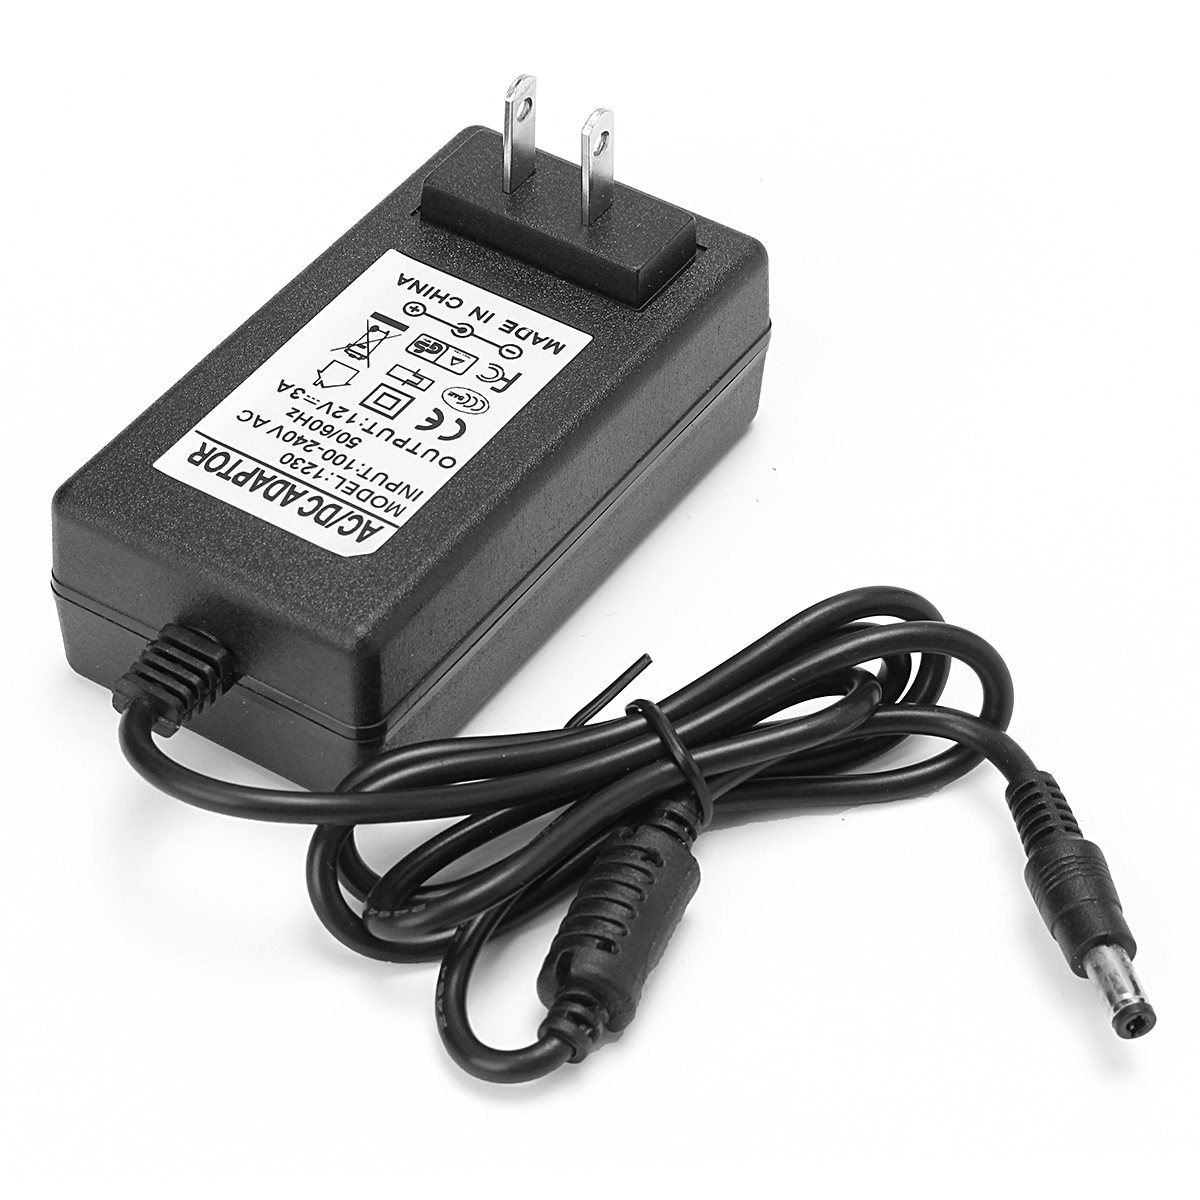 Power Supply Adapter Transformer 12V 3A 36W Power Adapter LED Power US Plug 2.1 * 5.5mm For CCTV Camera 2pcs 12v 1a dc switch power supply adapter us plug 1000ma 12v 1a for cctv camera